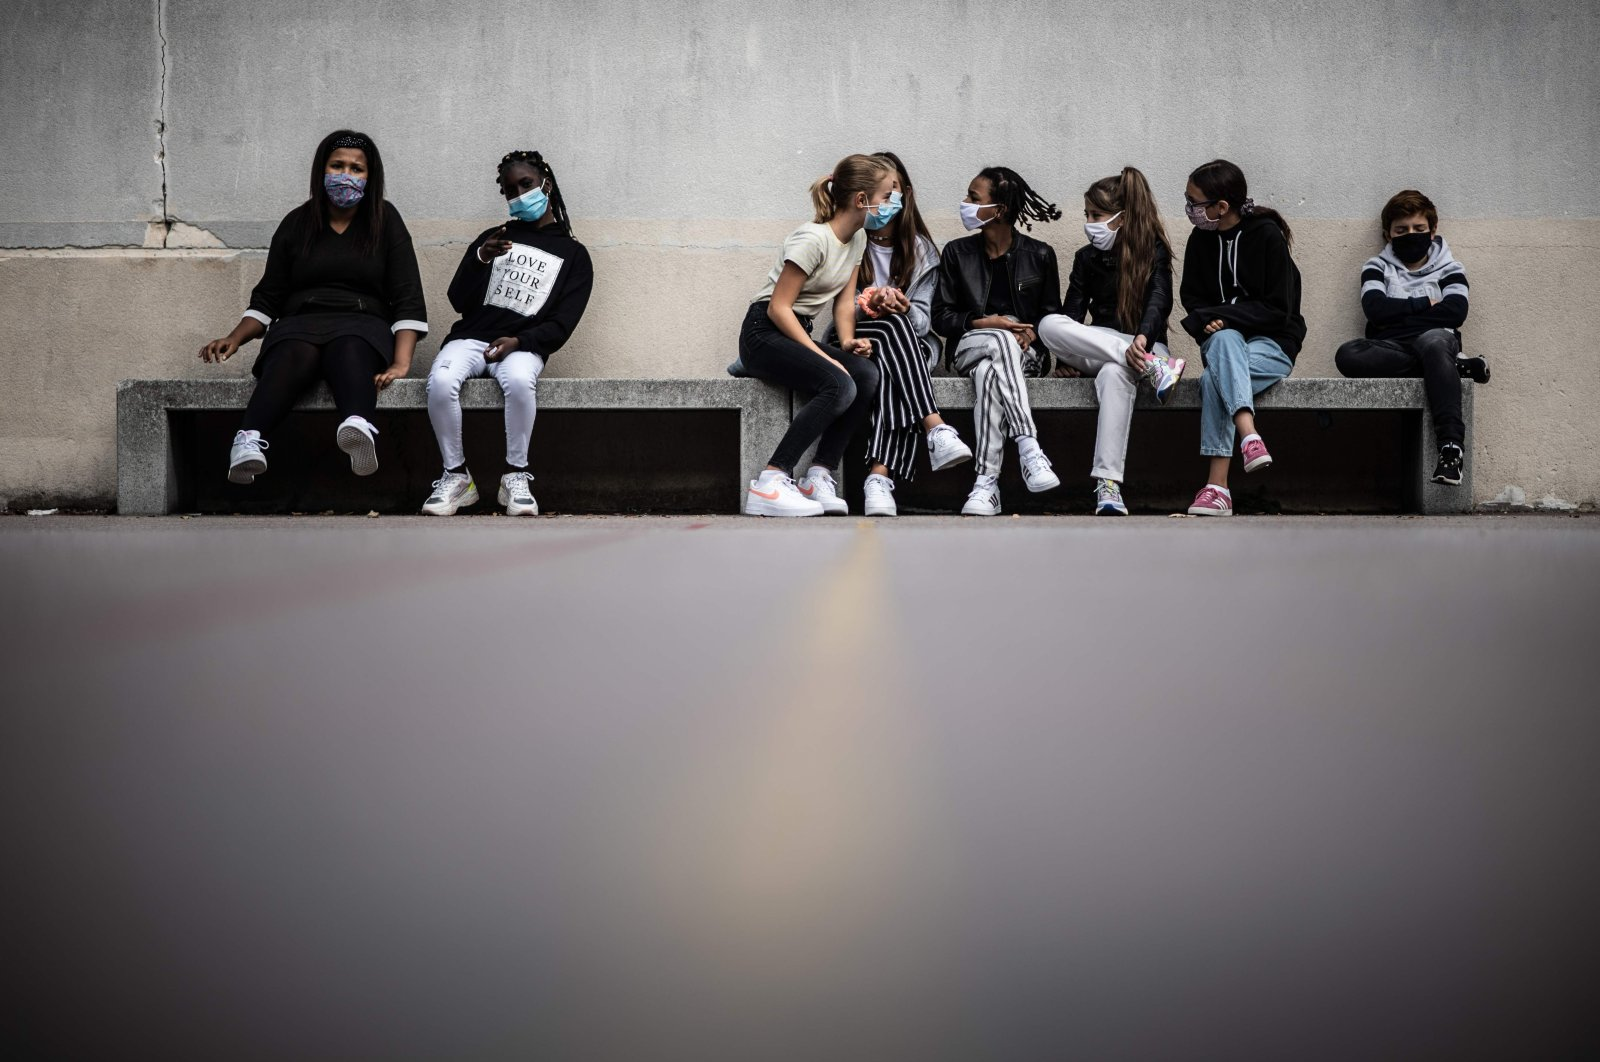 Pupils wearing protective masks sit in the courtyard at a middle school in Vincennes, France, Sept. 1, 2020. (AFP Photo)